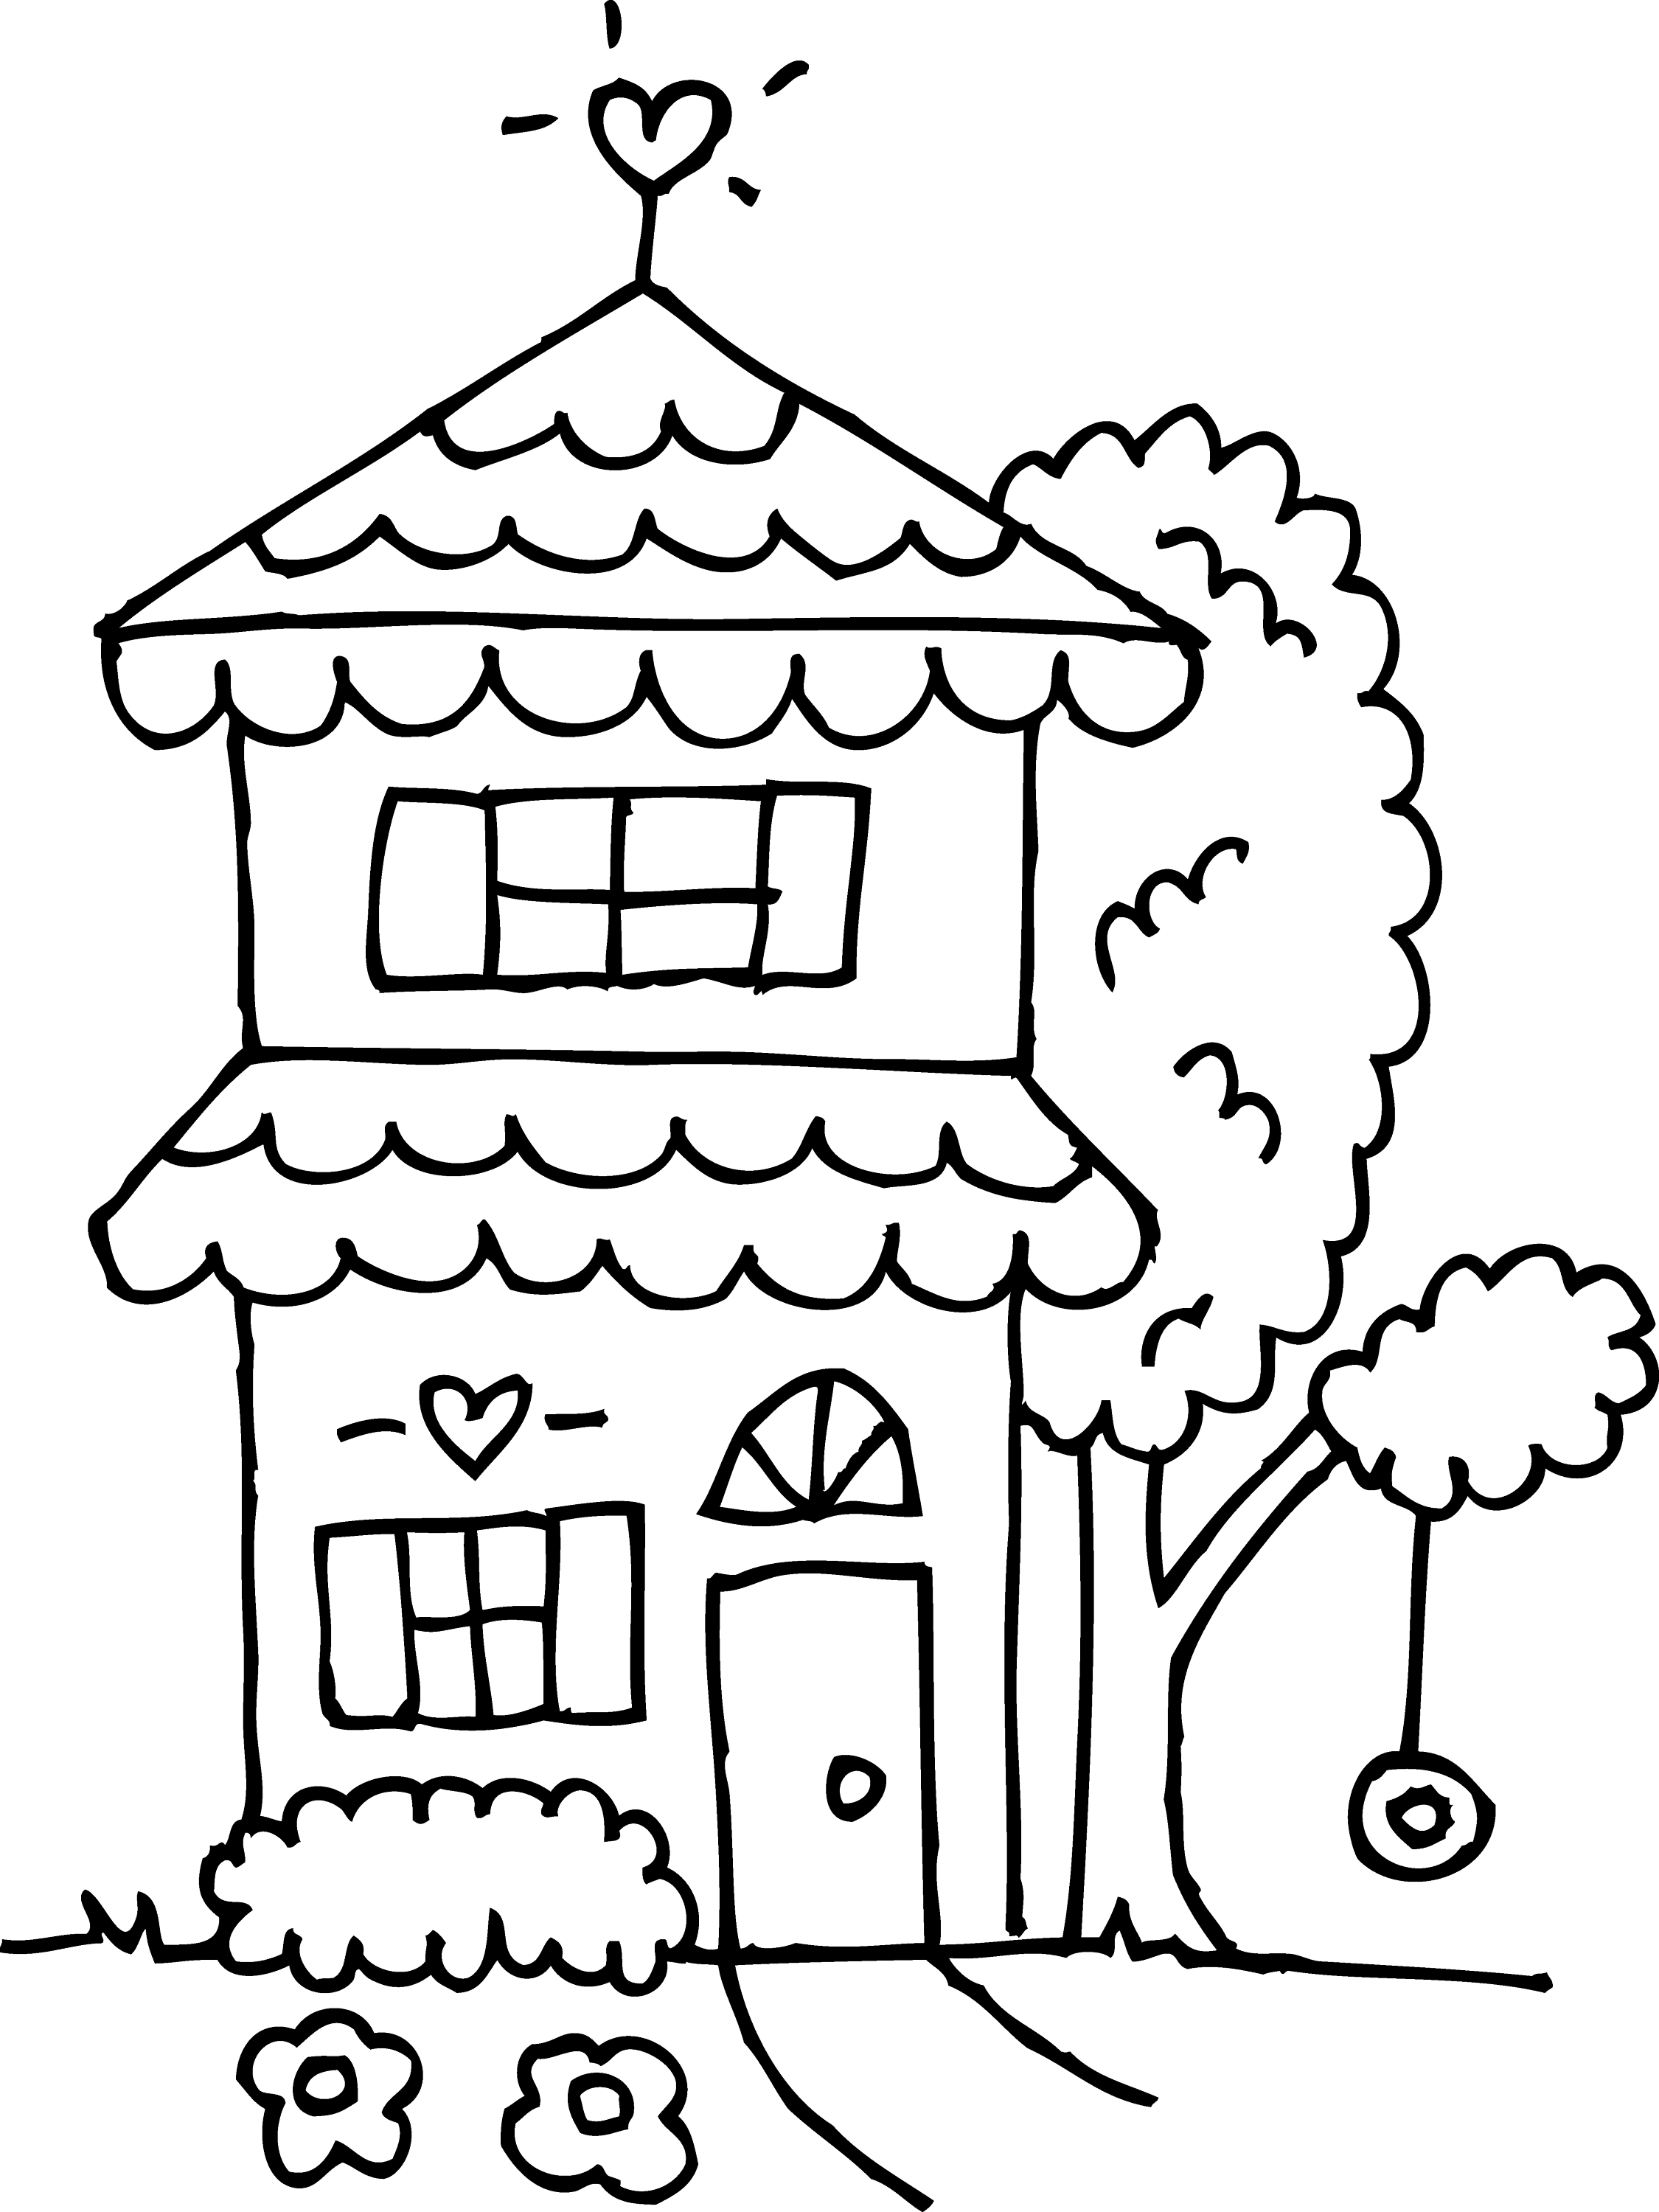 house coloring pictures free printable house coloring pages for kids coloring pictures house